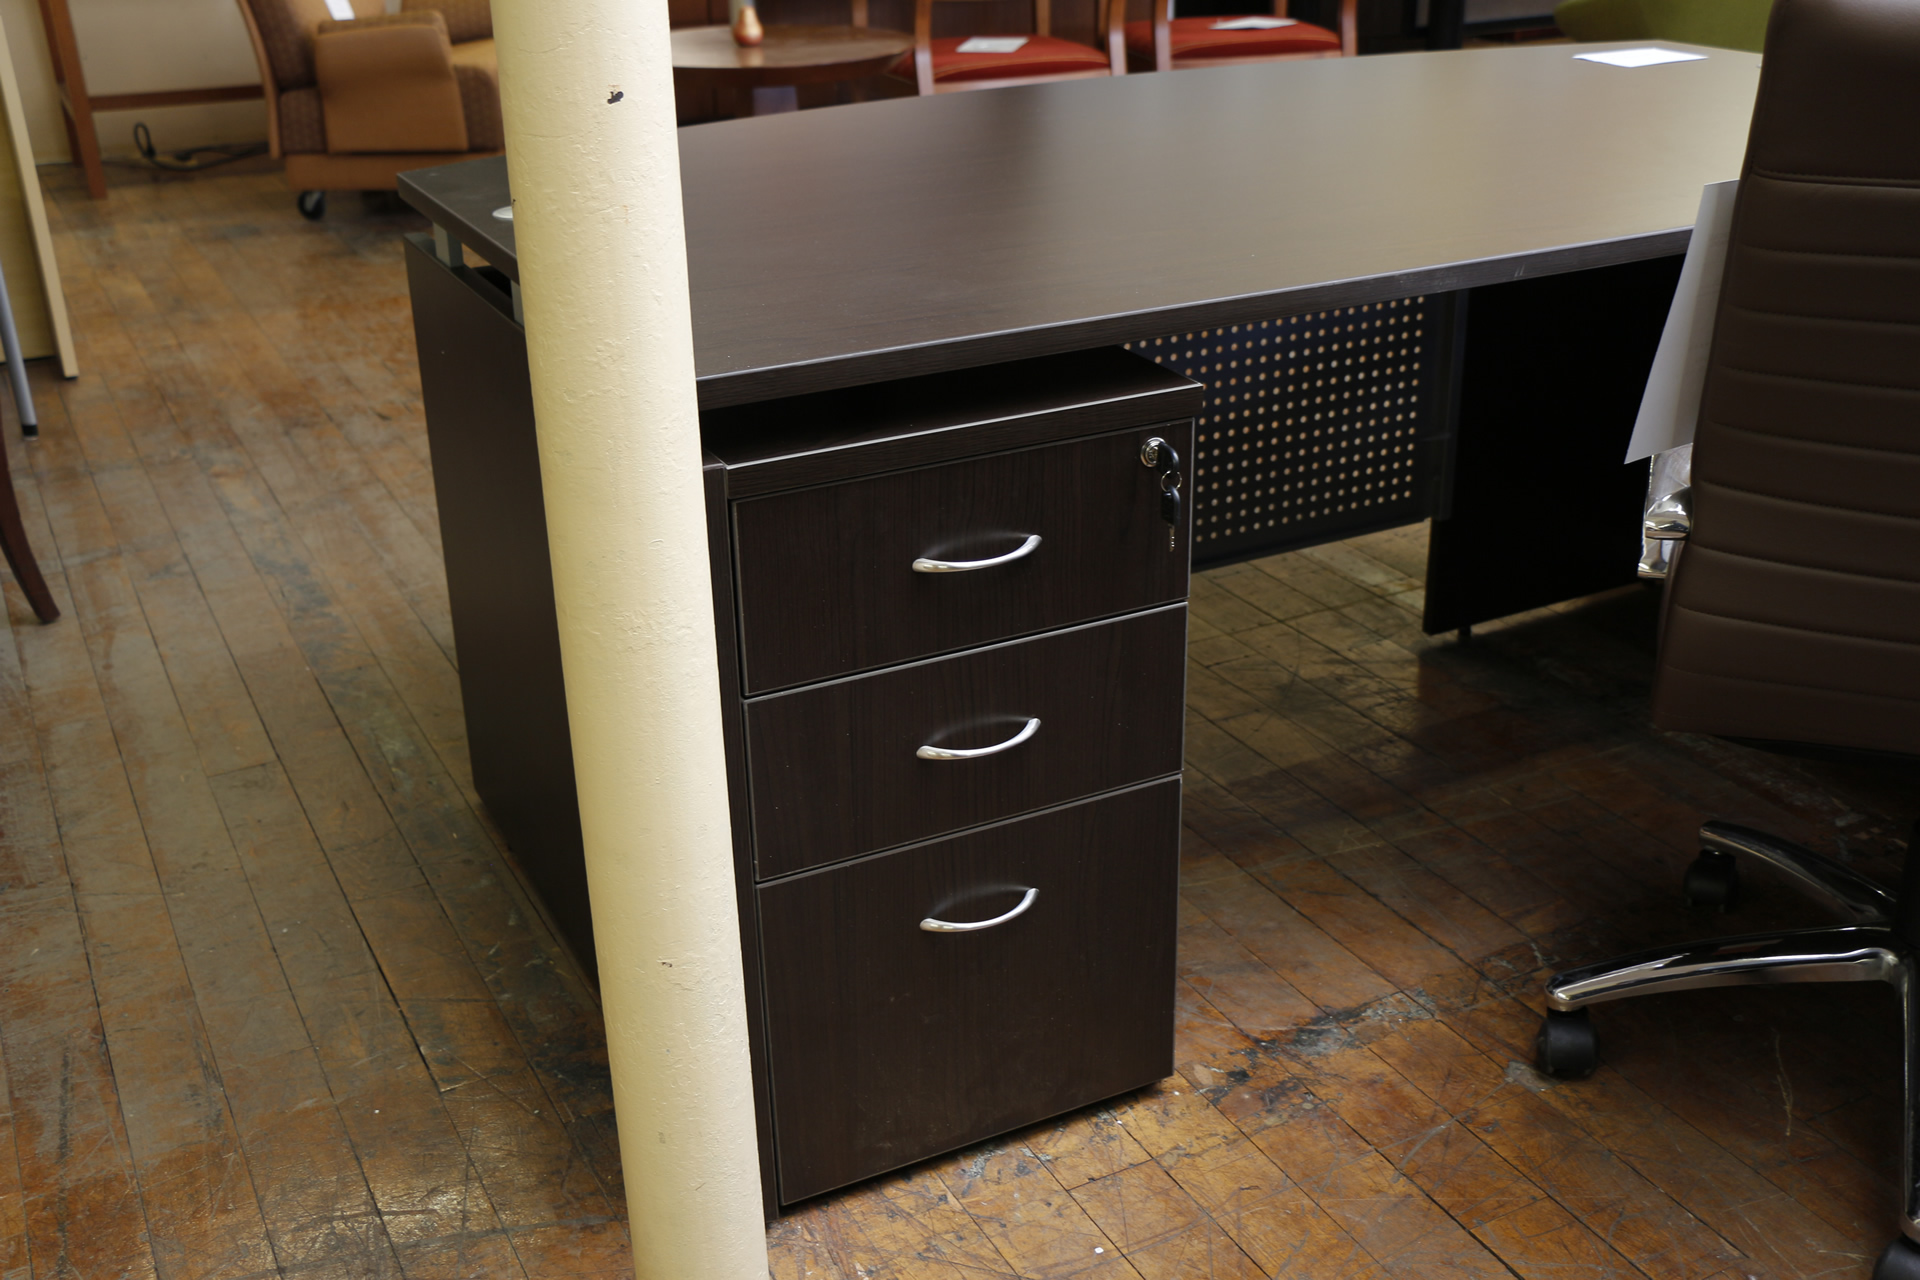 peartreeofficefurniture_peartreeofficefurniture_mg_5059.jpg